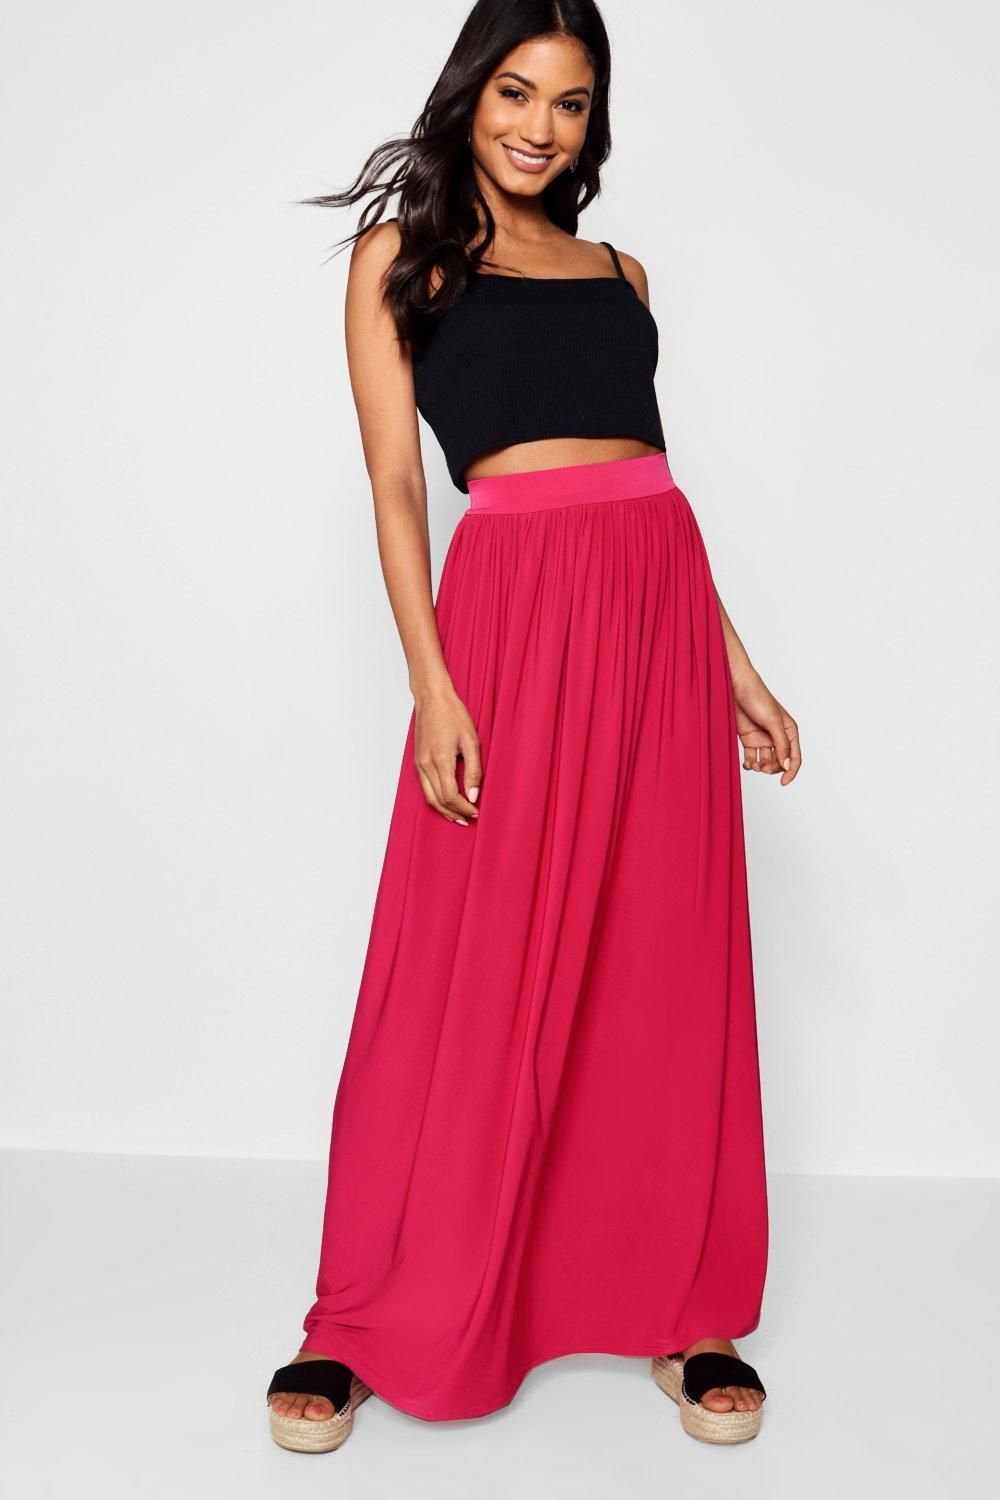 5a19186013 Click here to find out about the Sophia Slinky Floor Sweeping Maxi Skirt  from Boohoo, part of our latest Skirts collection ready to shop online  today!